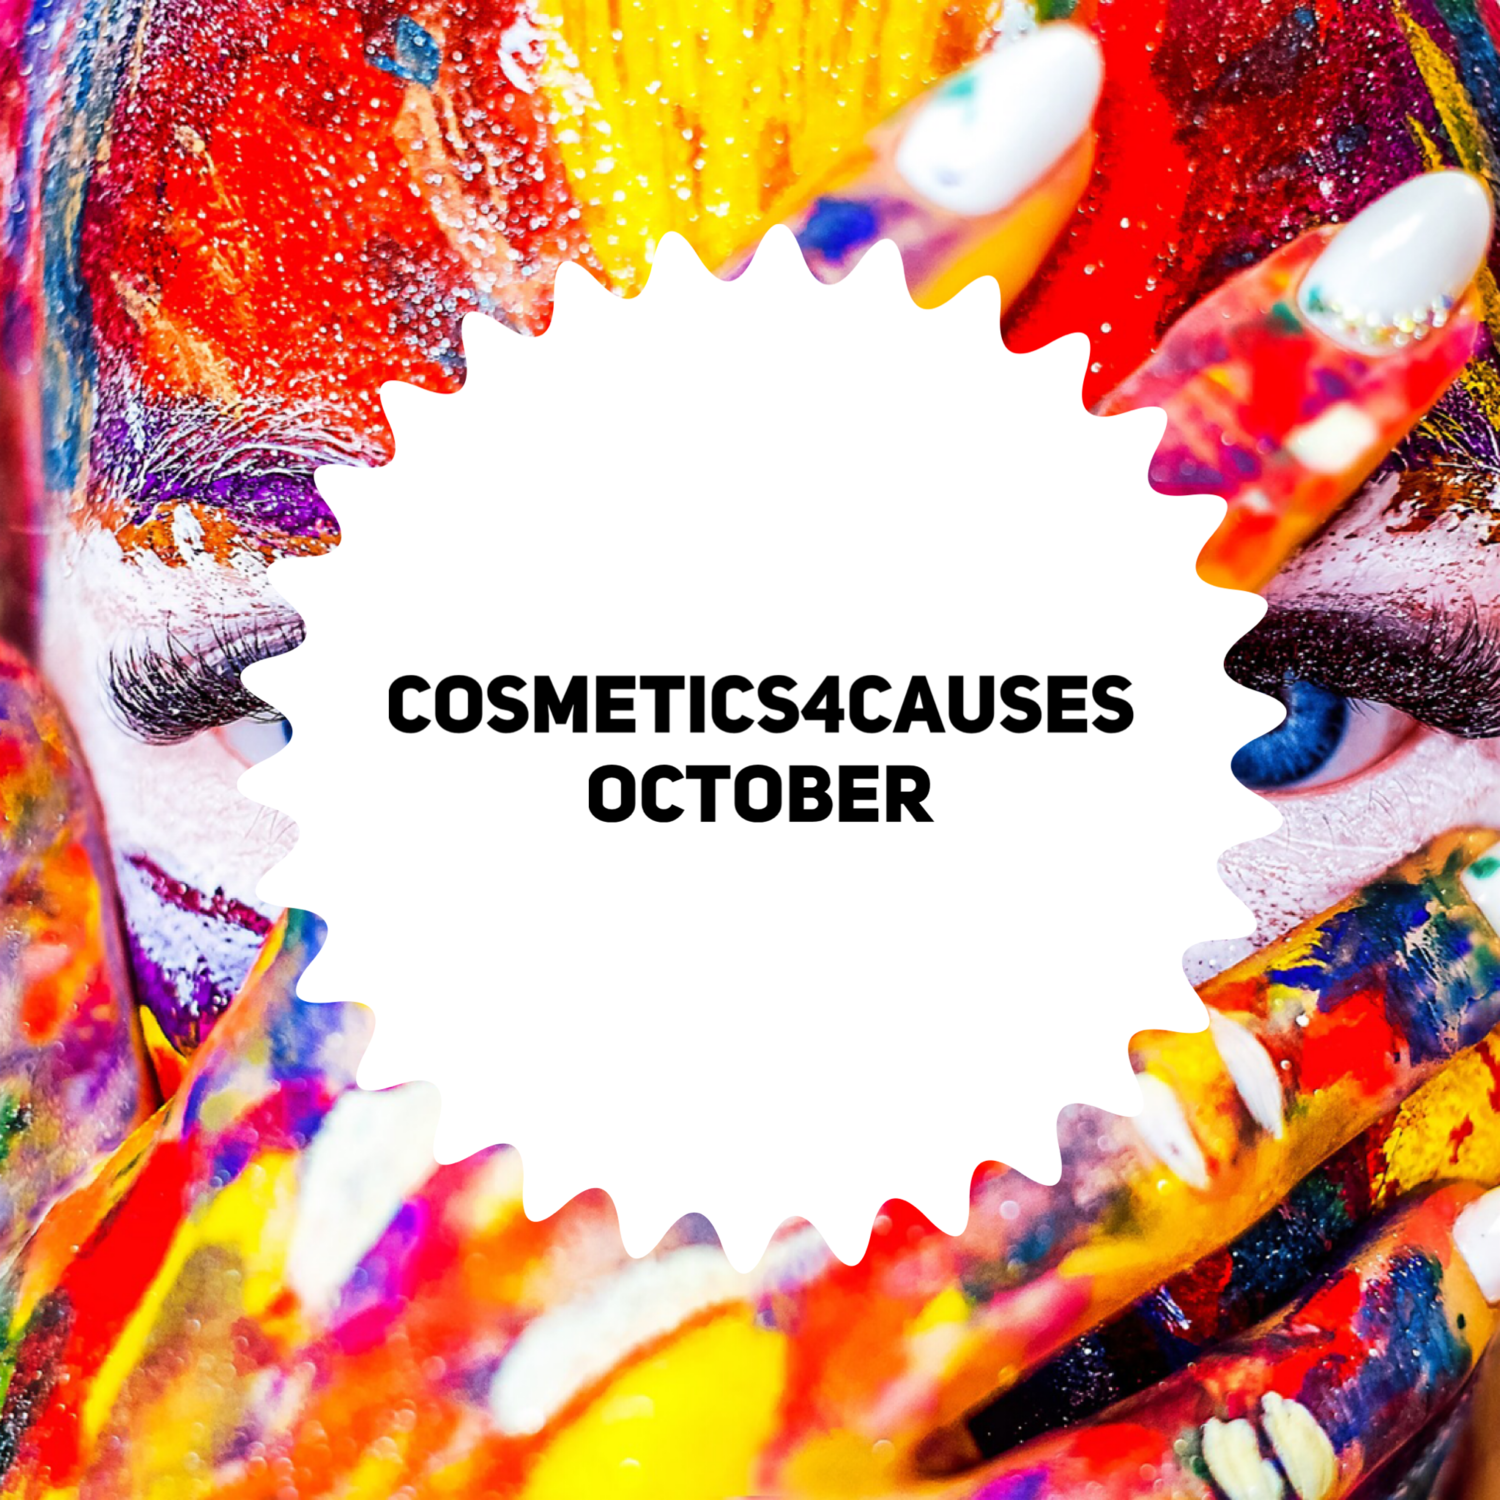 Cosmetics4Causes - OCTOBER